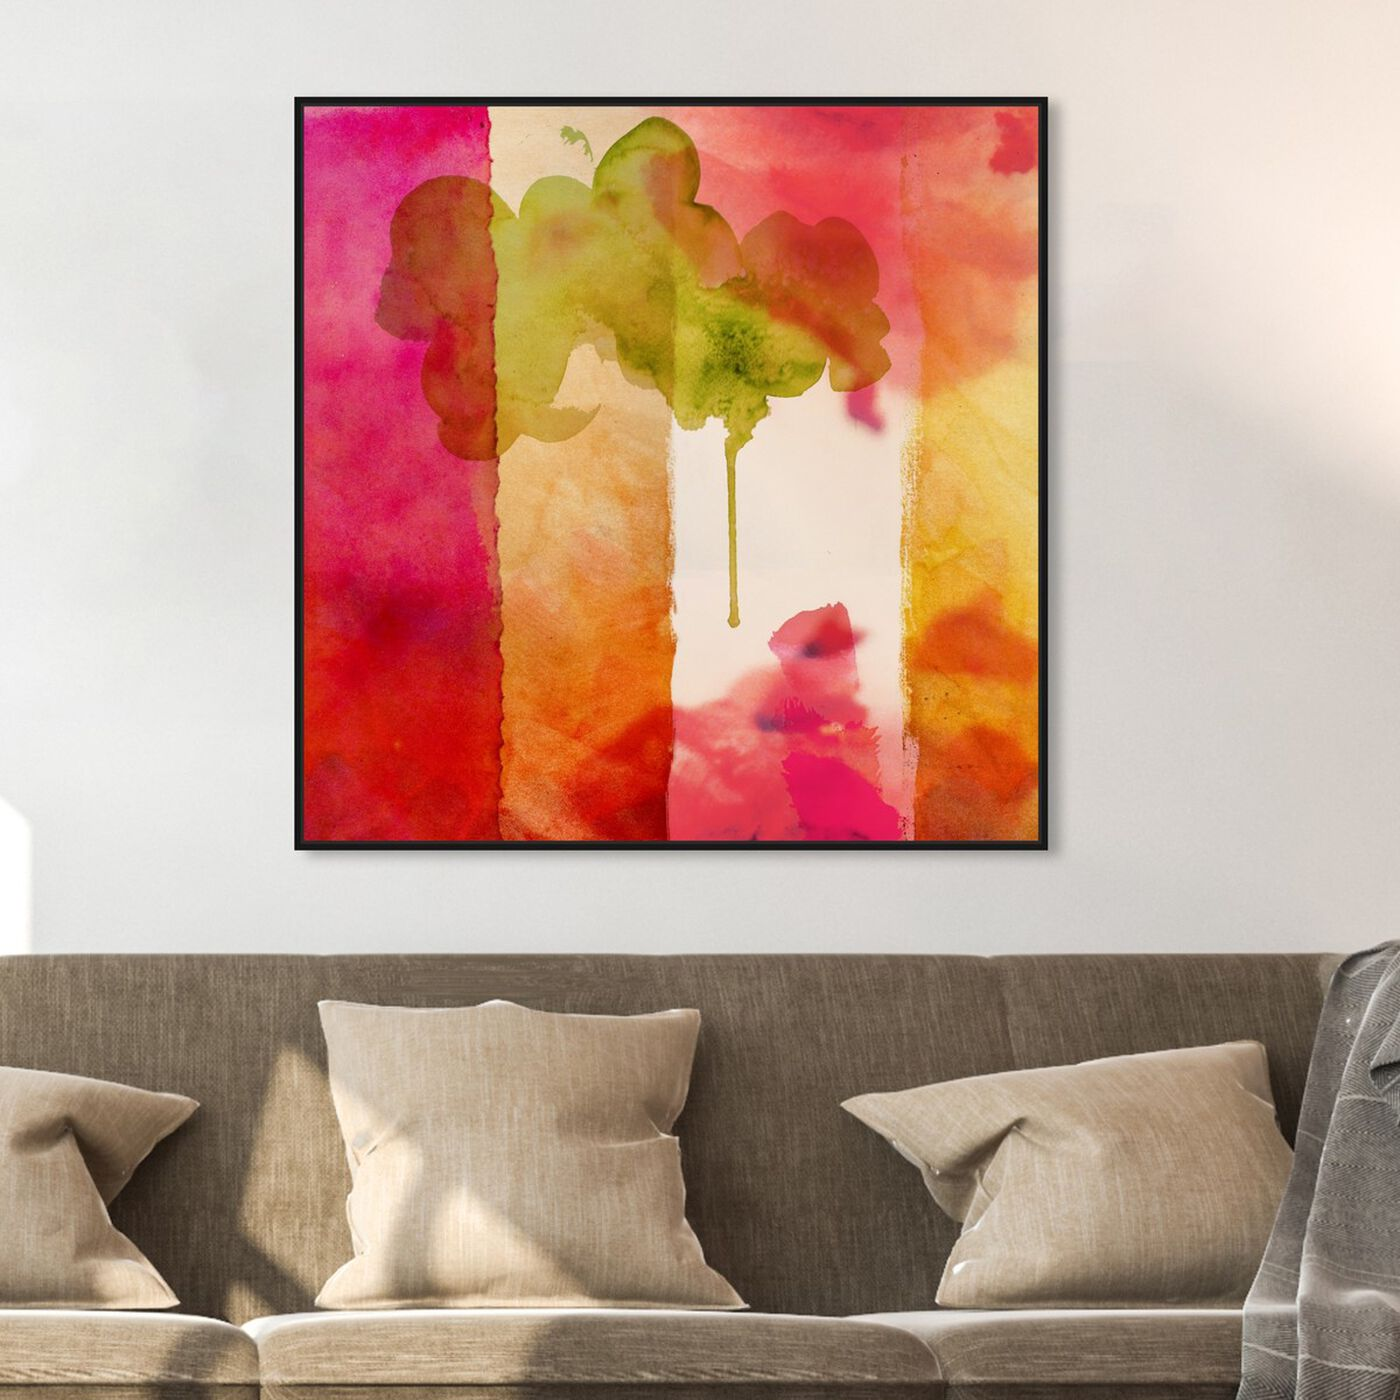 Hanging view of Amber Velvet featuring abstract and watercolor art.